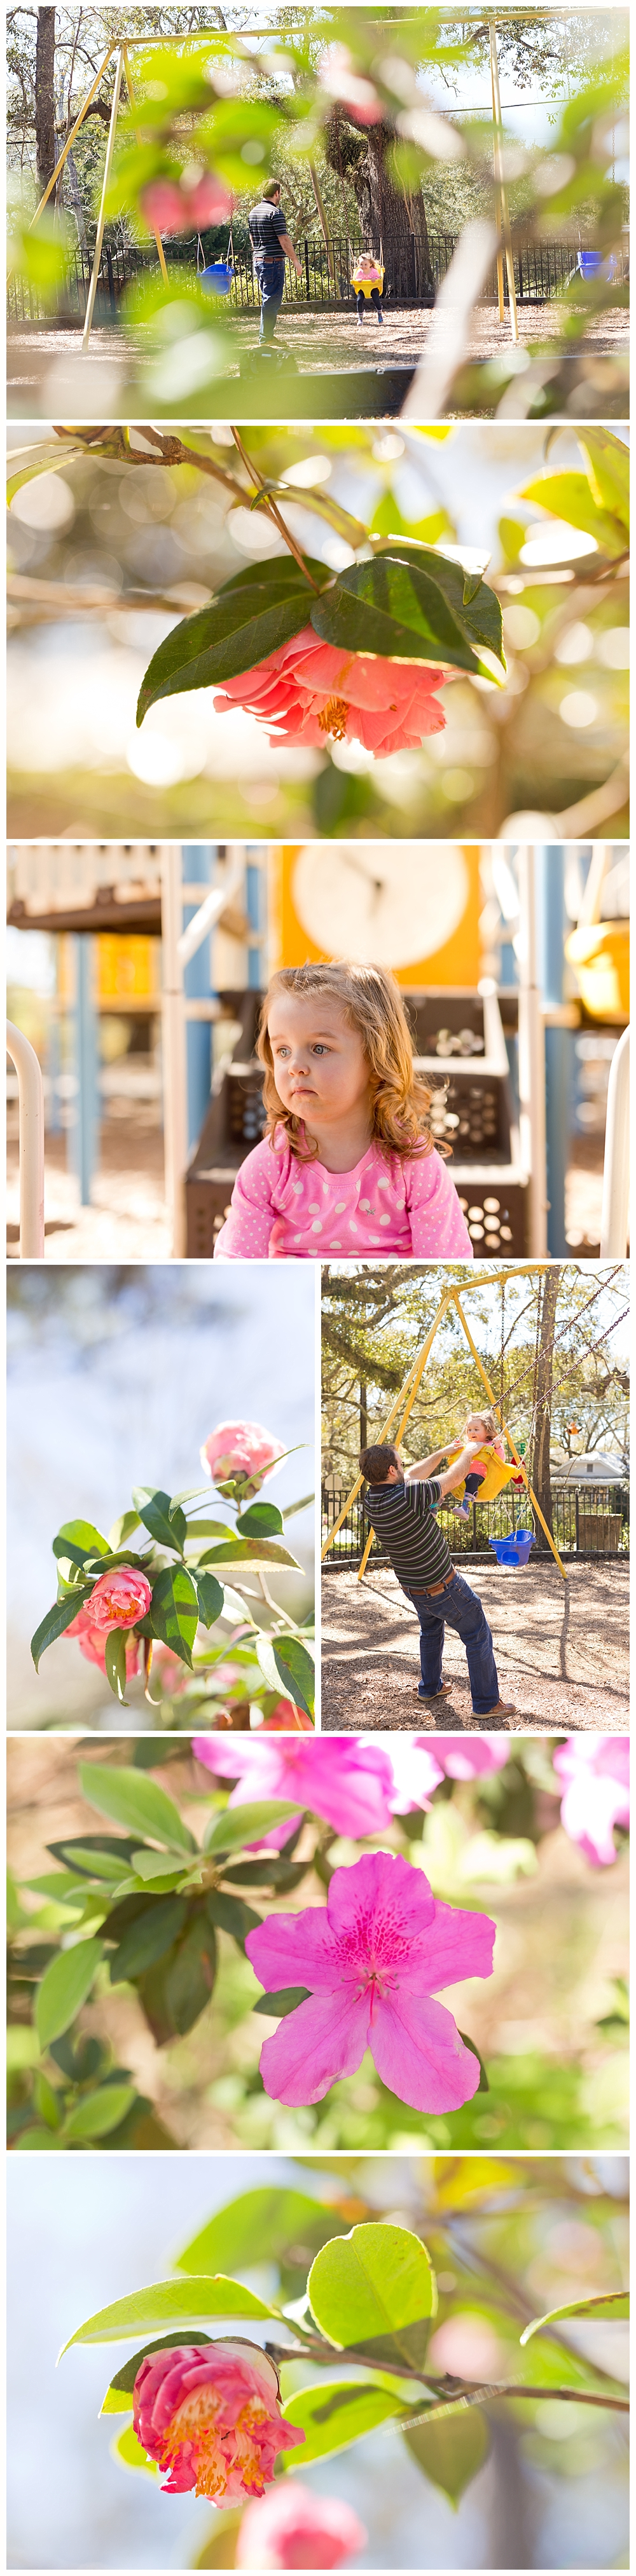 family lifestyle and nature photographs at Little Children's Park in Ocean Springs